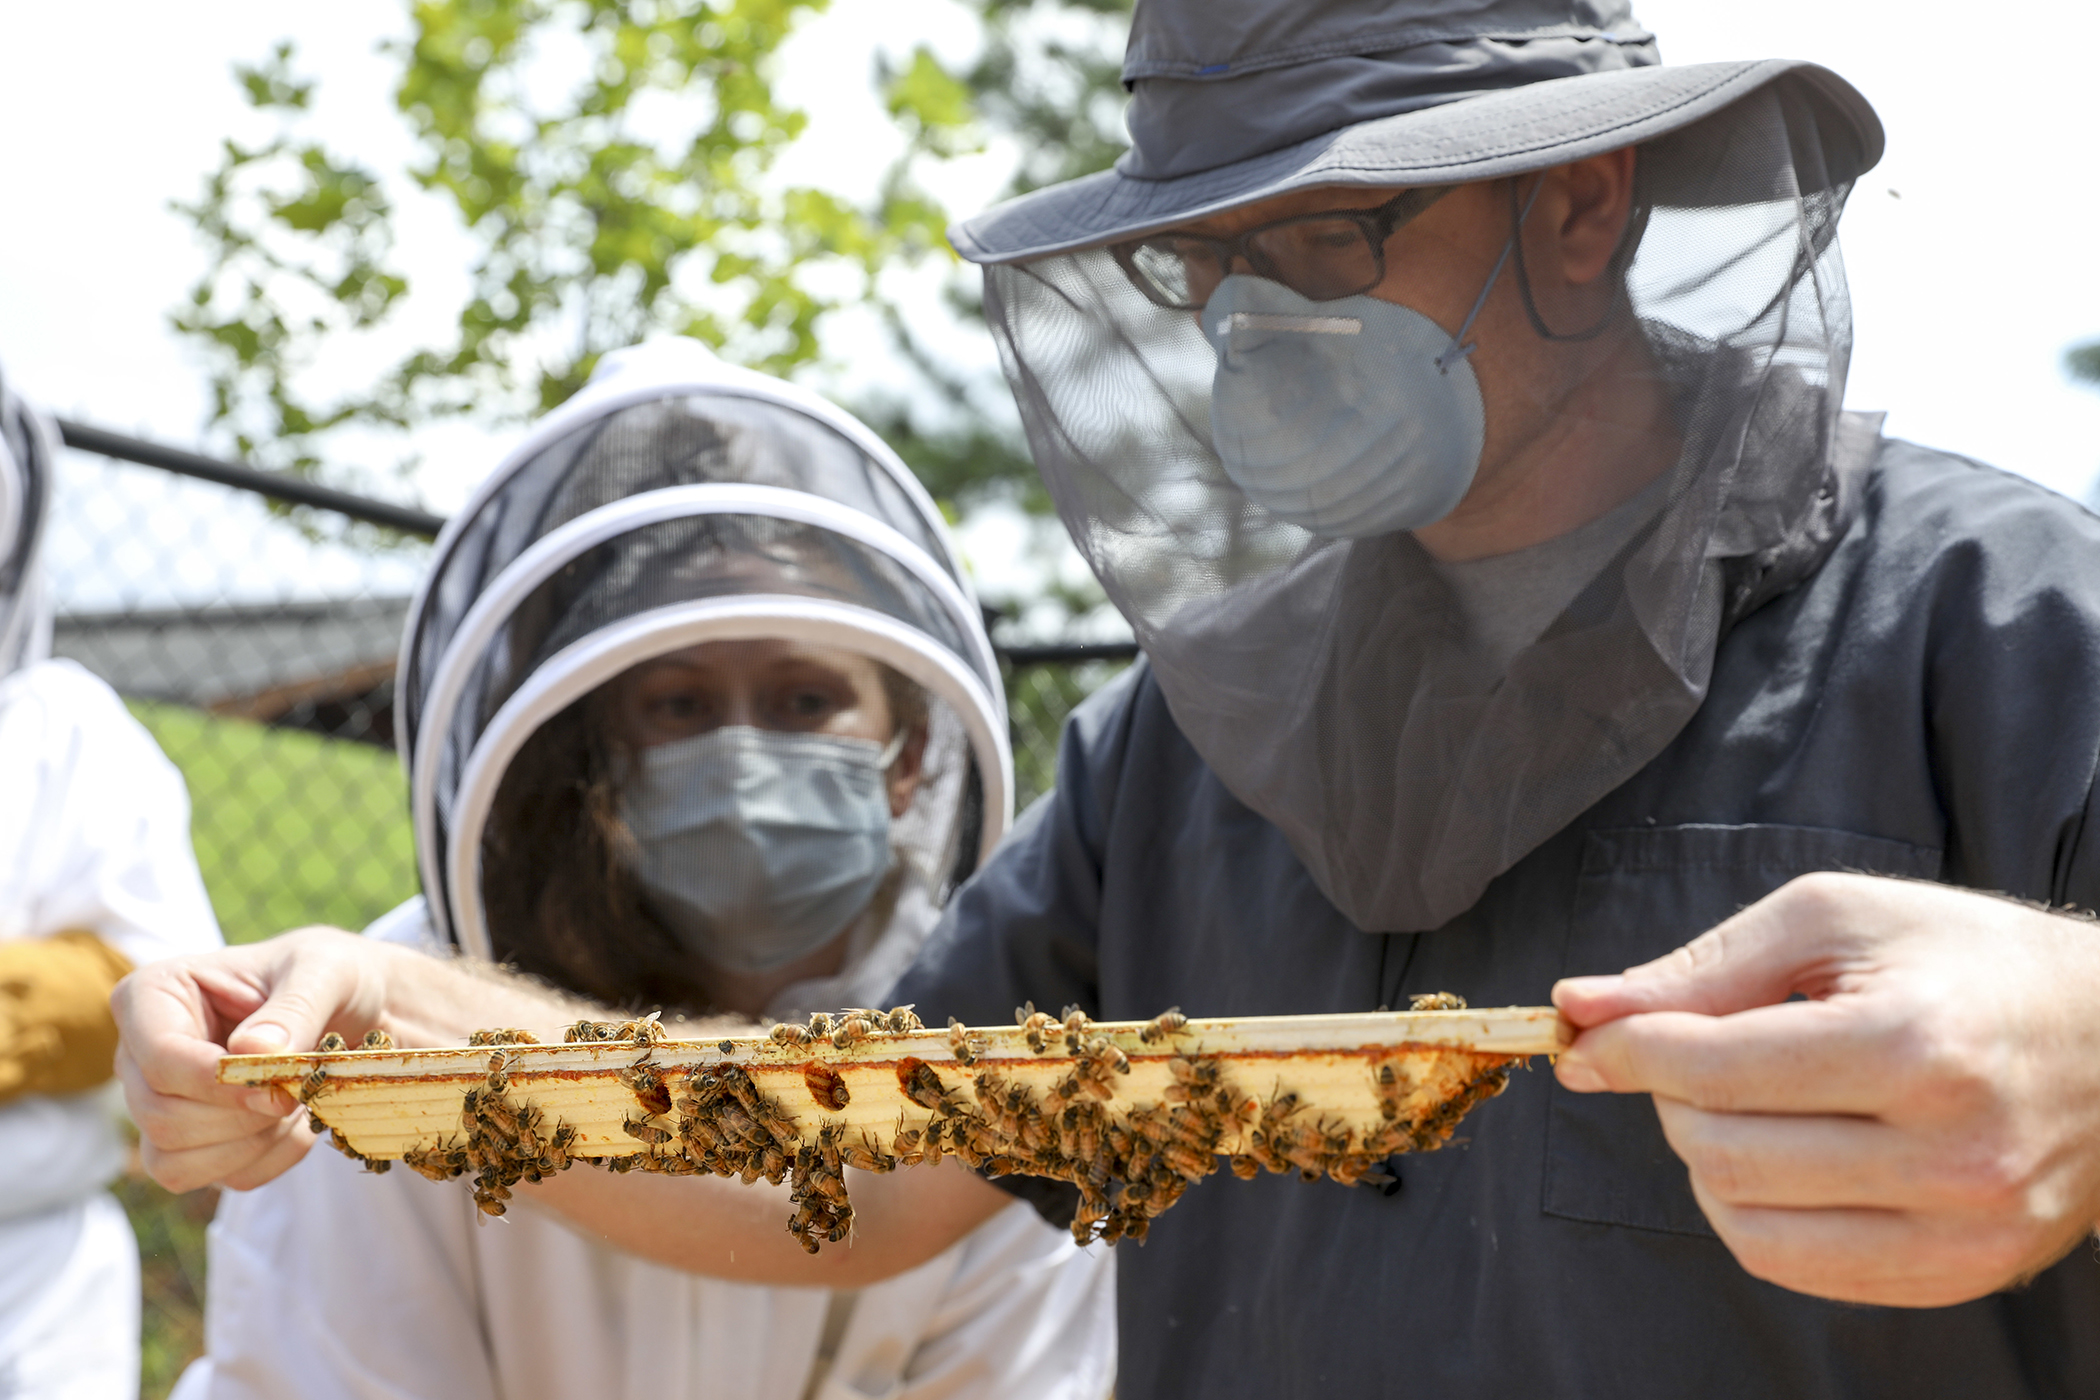 College of Veterinary Medicine residents Dr. Megan Partyka and Dr. Gregory Walth inspect a beehive frame. (Photo by Dorothy Kozlowski/UGA)